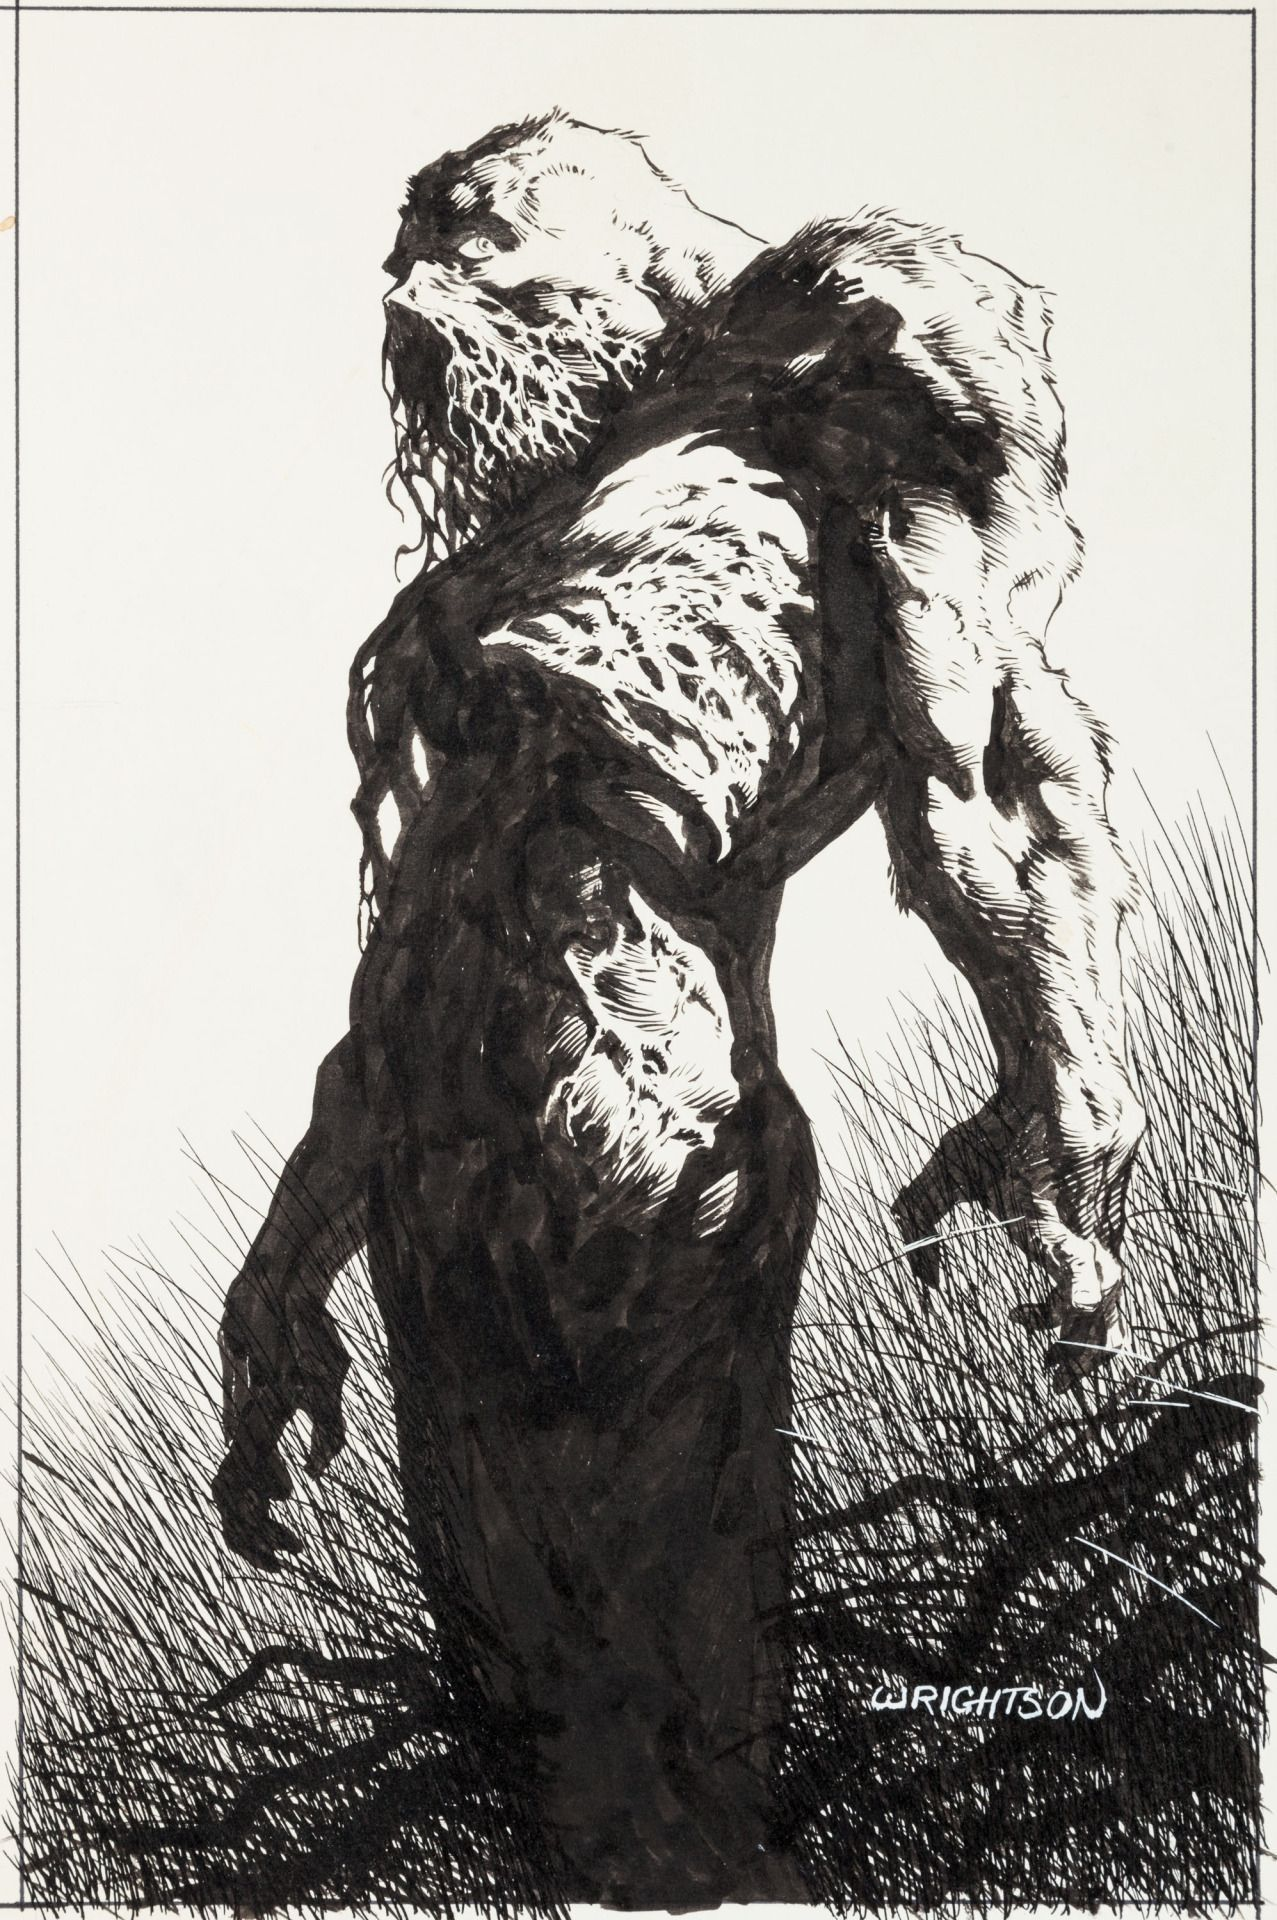 Swamp Thing by Bernie Wrightson #swampthing Swamp Thing by Bernie Wrightson #swampthing Swamp Thing by Bernie Wrightson #swampthing Swamp Thing by Bernie Wrightson #swampthing Swamp Thing by Bernie Wrightson #swampthing Swamp Thing by Bernie Wrightson #swampthing Swamp Thing by Bernie Wrightson #swampthing Swamp Thing by Bernie Wrightson #swampthing Swamp Thing by Bernie Wrightson #swampthing Swamp Thing by Bernie Wrightson #swampthing Swamp Thing by Bernie Wrightson #swampthing Swamp Thing by B #swampthing